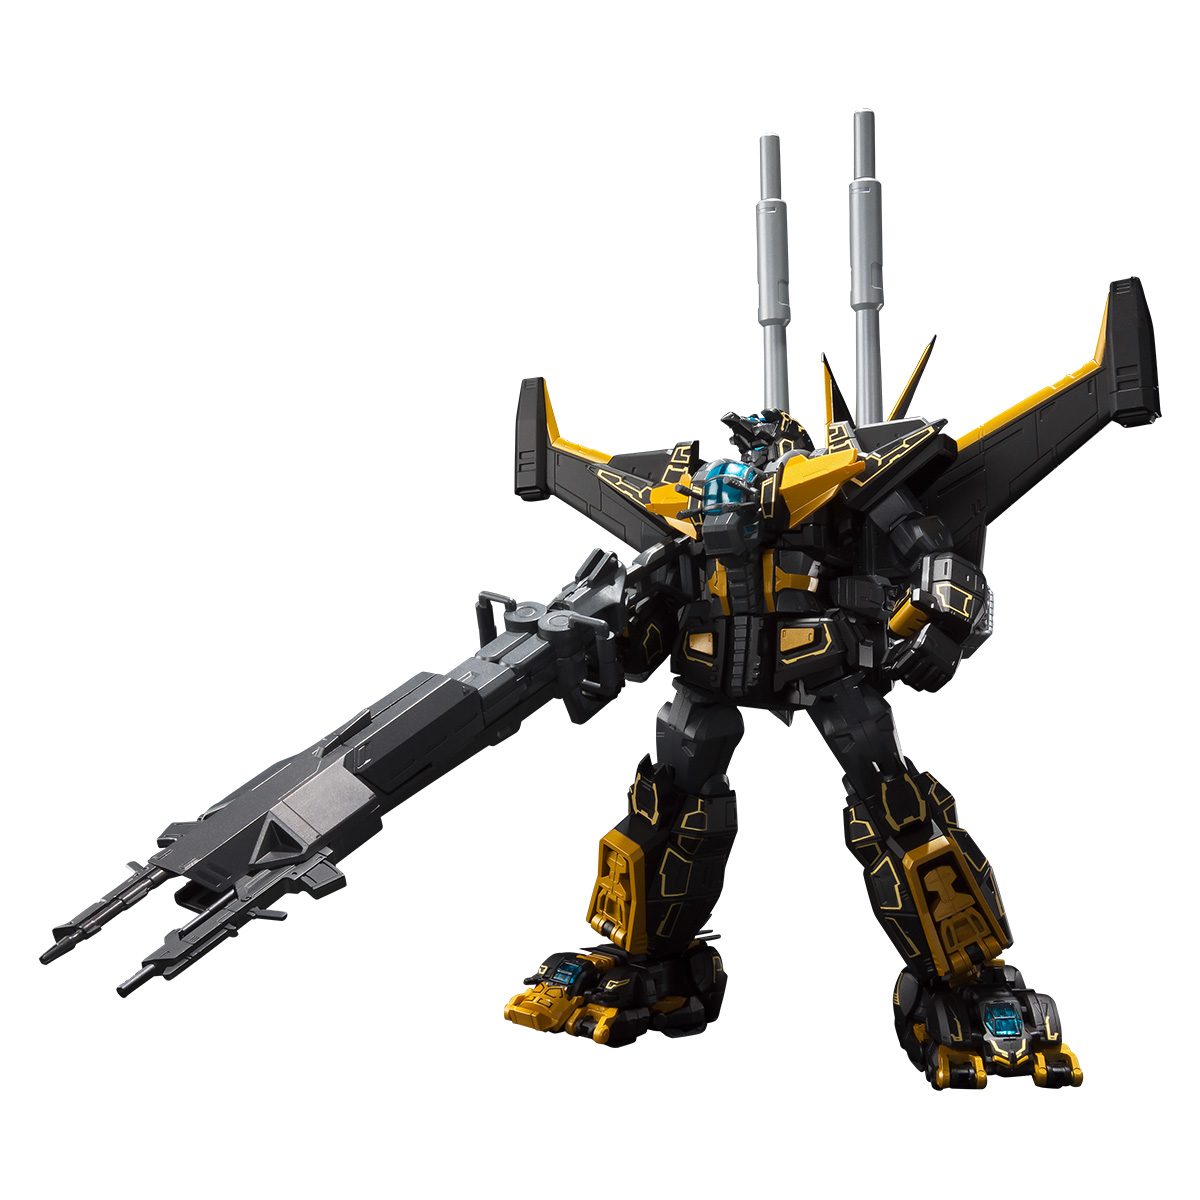 [免運費] SUPER MINIPLA SUPER BEAST MACHINE GOD DANCOUGA BLACK COLOR Ver.